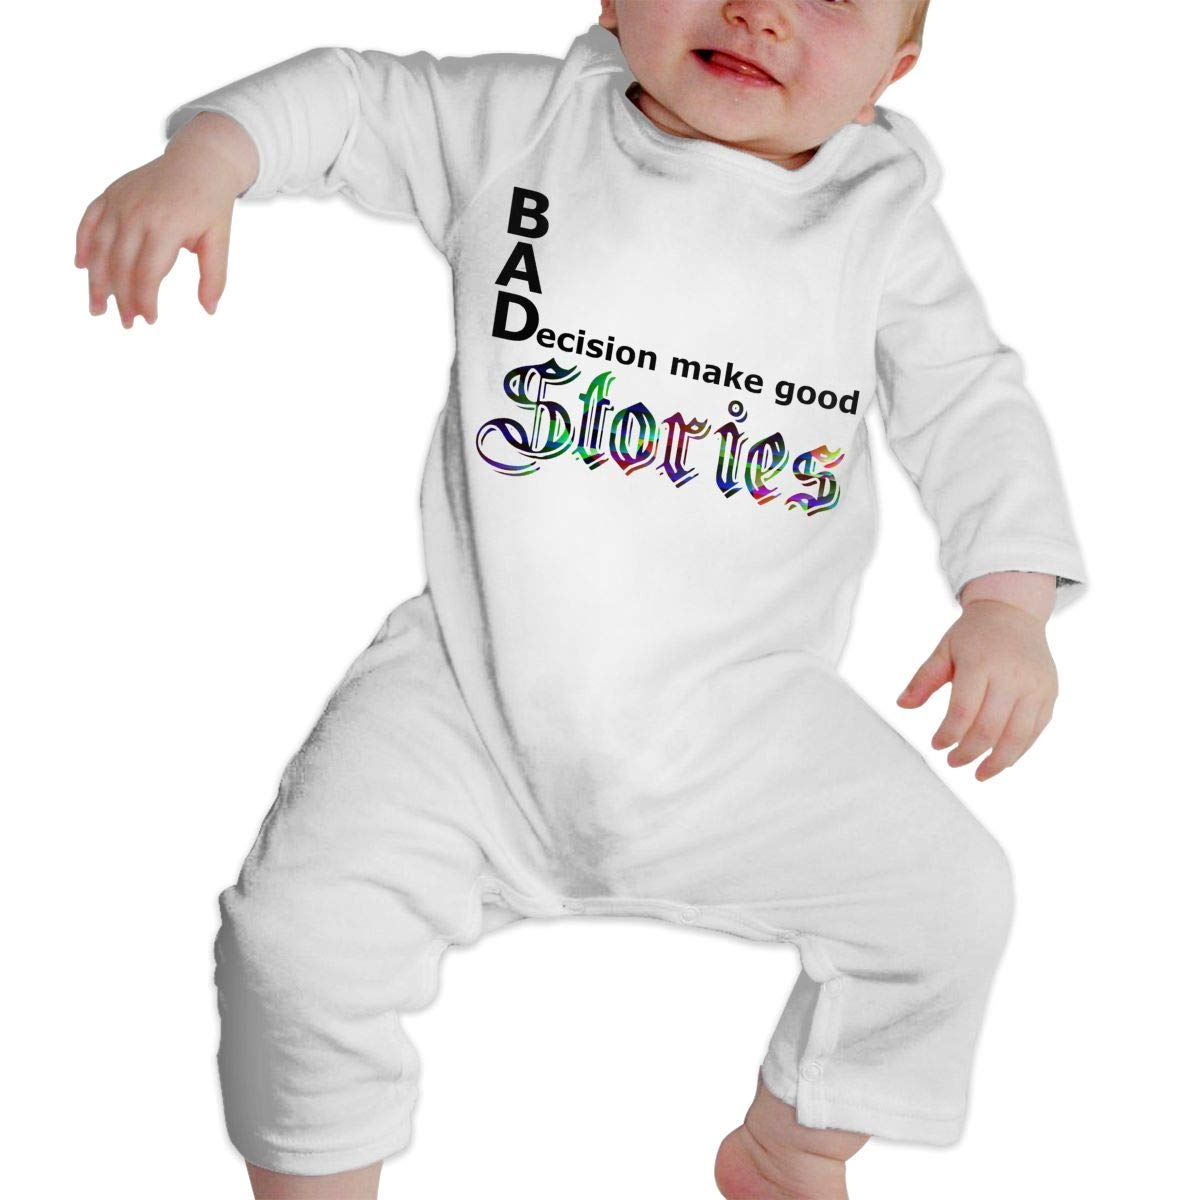 Fasenix Bad Decisions Make Good Stories Newborn Baby Boy Girl Romper Jumpsuit Long Sleeve Bodysuit Overalls Outfits Clothes